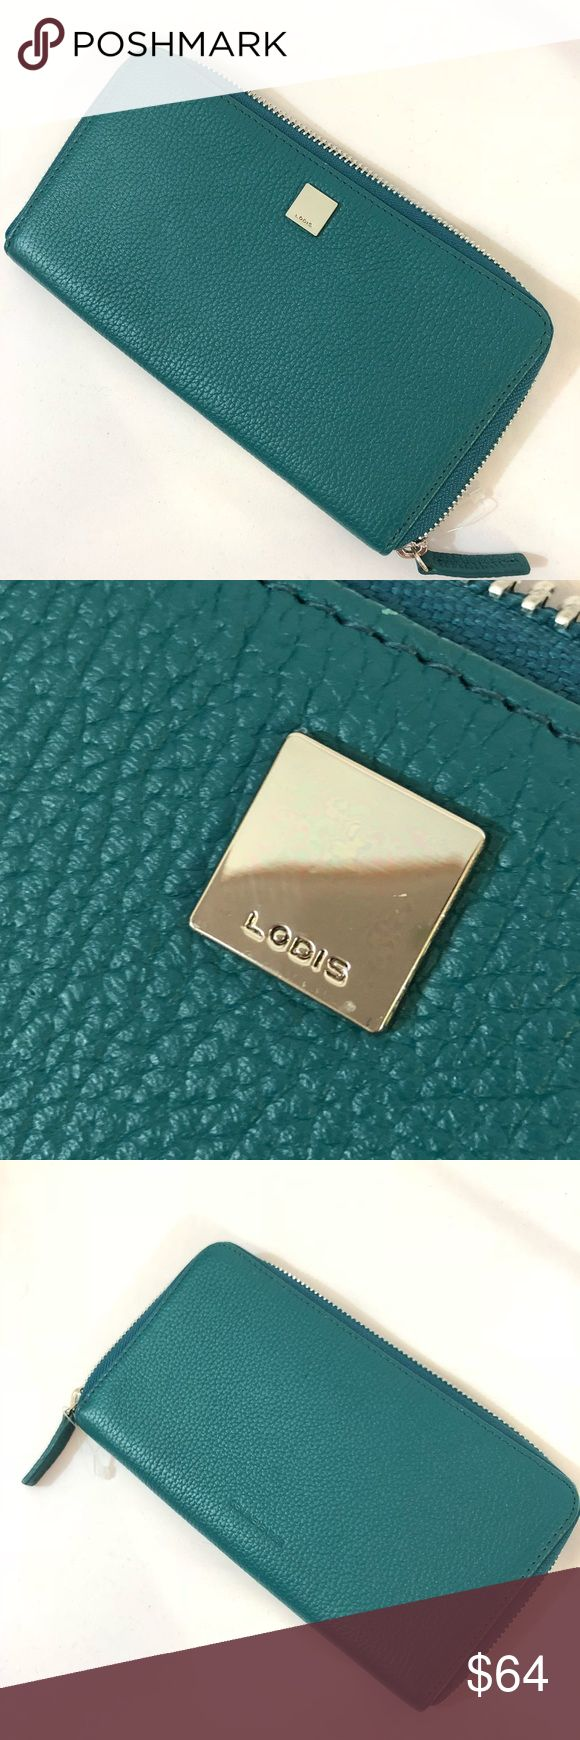 🔥NEW!!🔥 Lodis Zip Wallet Quite simply, chic timeless beauty, refined and elegant. Features smooth grain leather in a beautiful teal color. Inner zip coin purse, lots of credit card slots. Lodis Bags Wallets